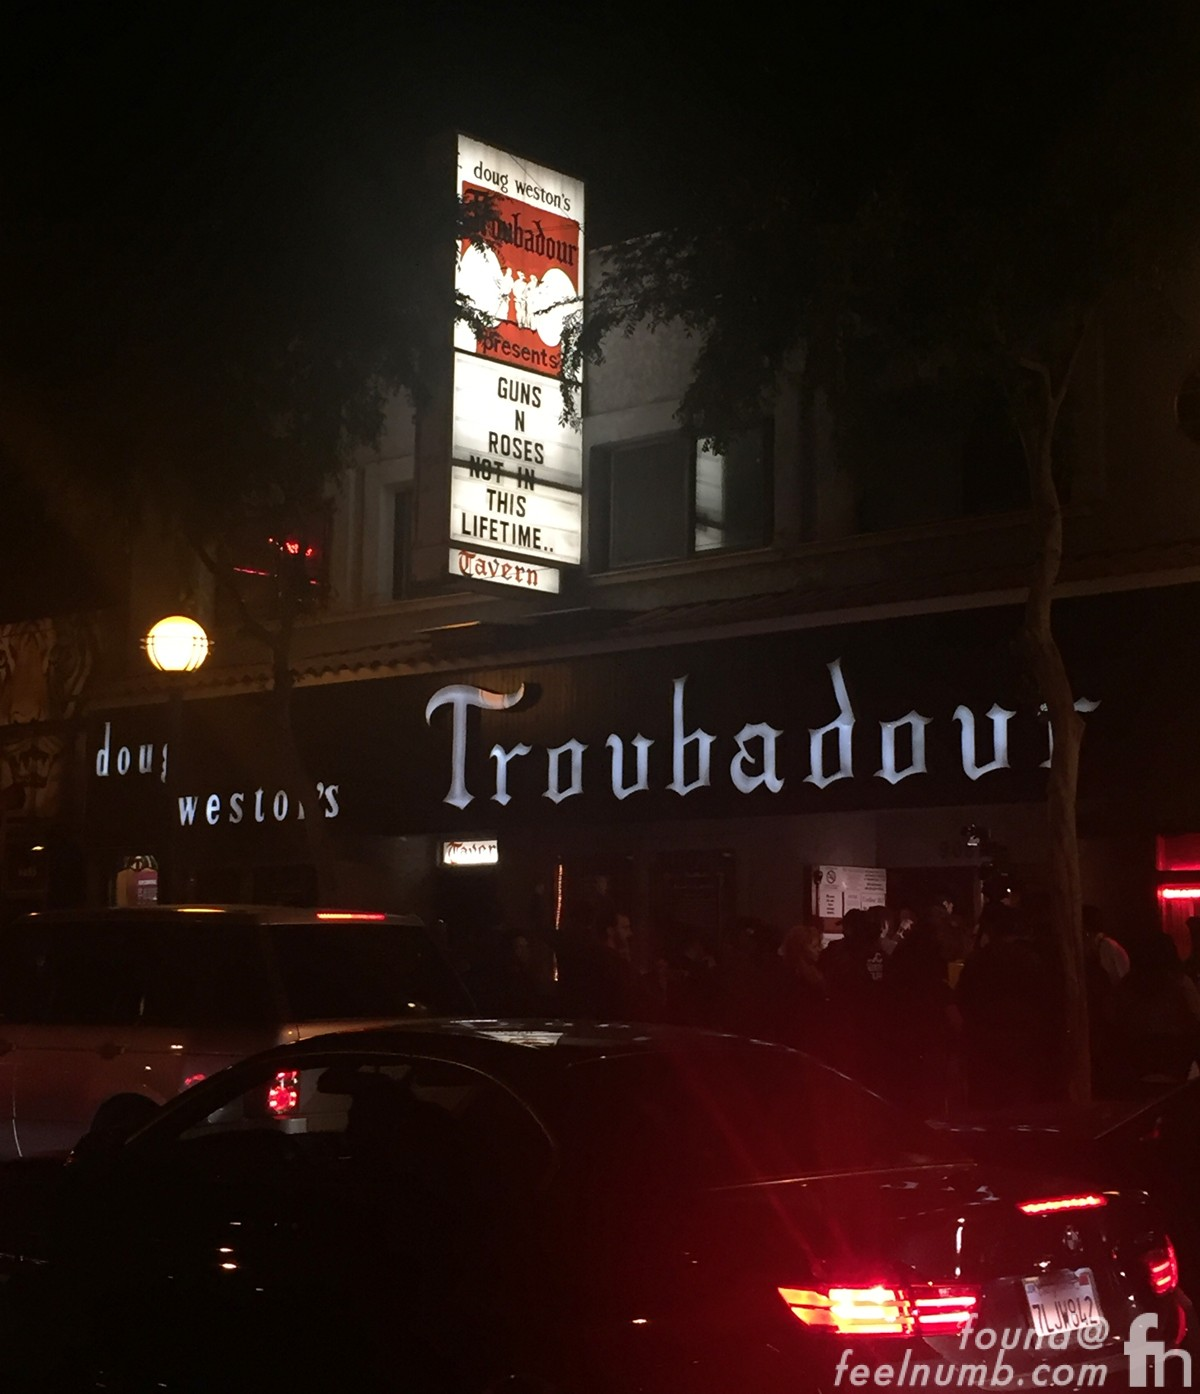 Guns N Roses The Troubador April 1, 2016 Los Angeles CA feelnumb.com